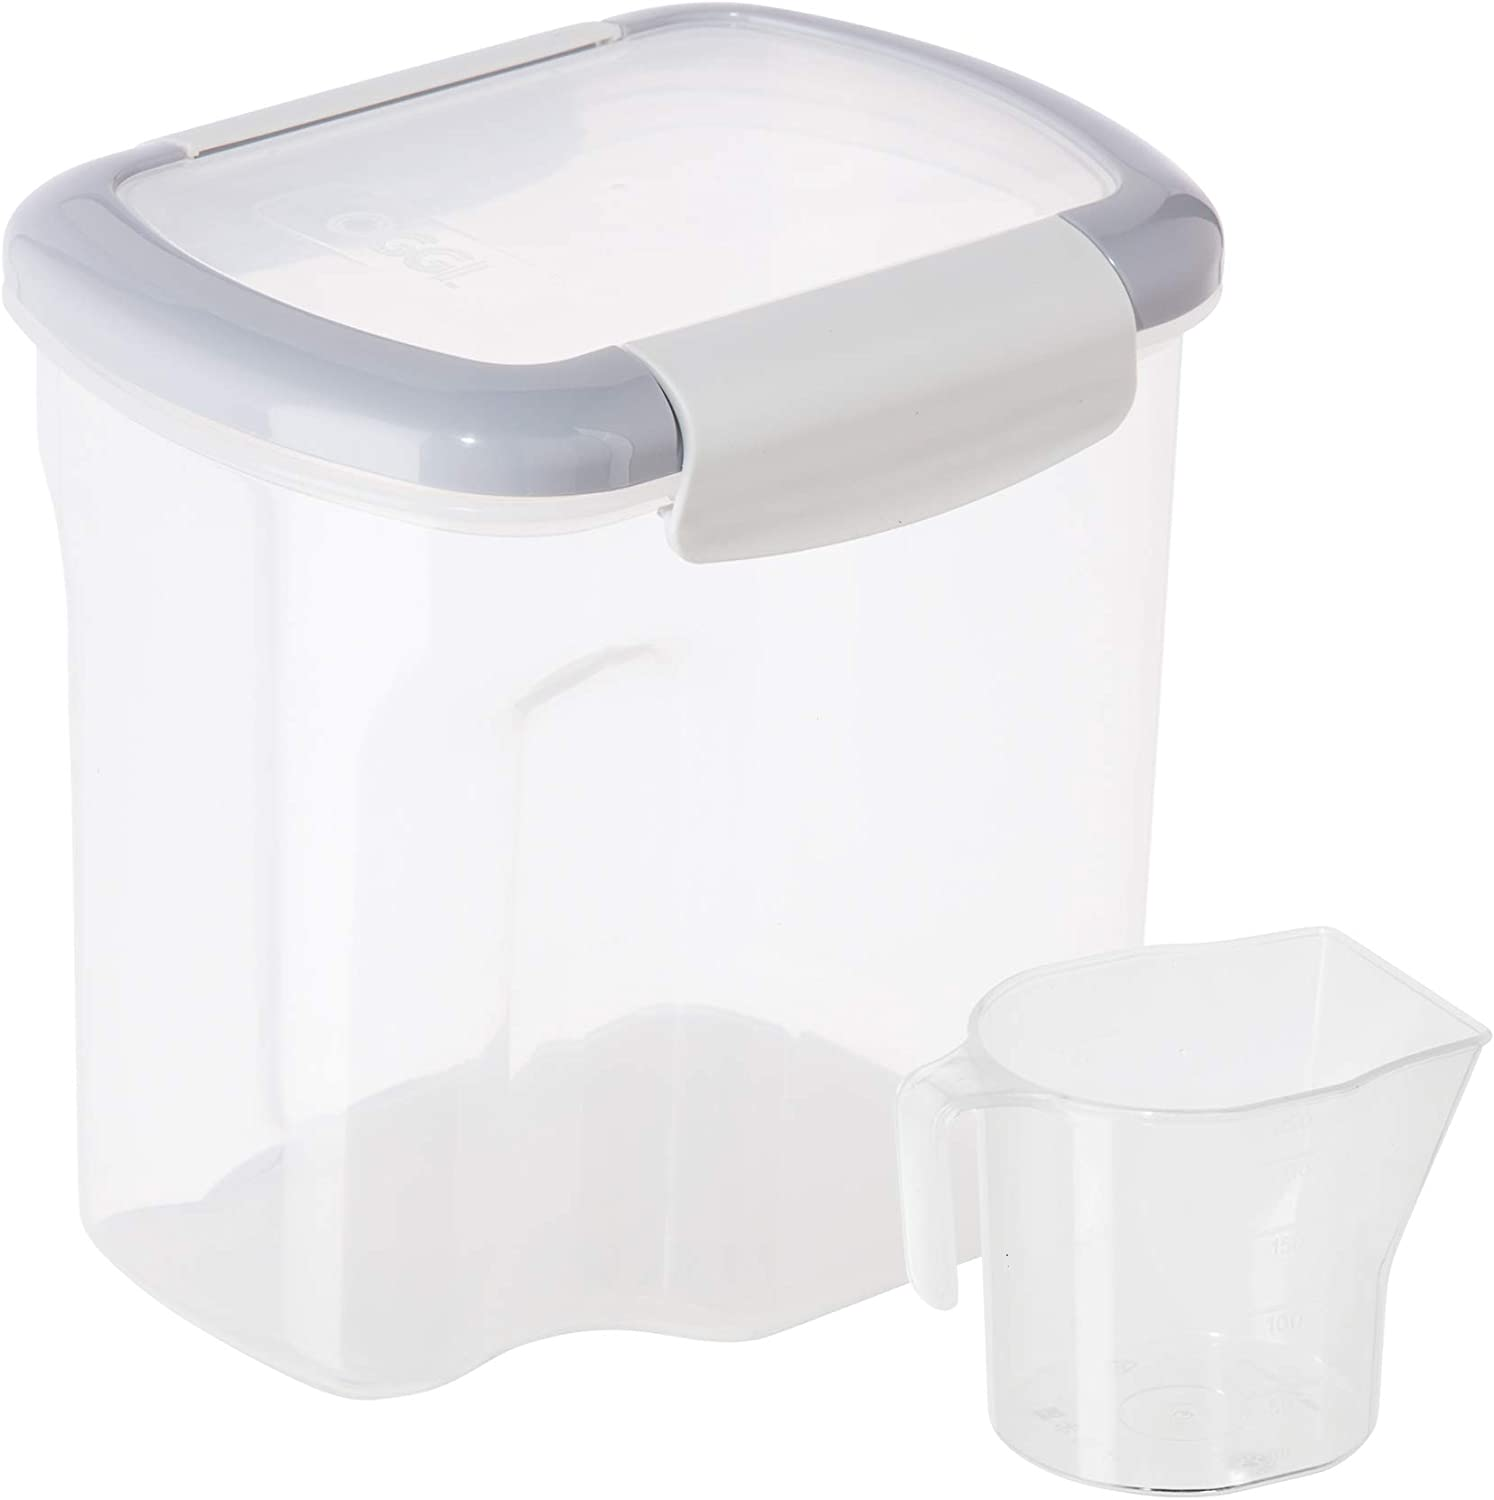 OGGI FreshLock Rectangular Storage Container w/ Scoop- 81oz(10 cup), Airtight Food Storage, Pantry Organization, Clear/Gray